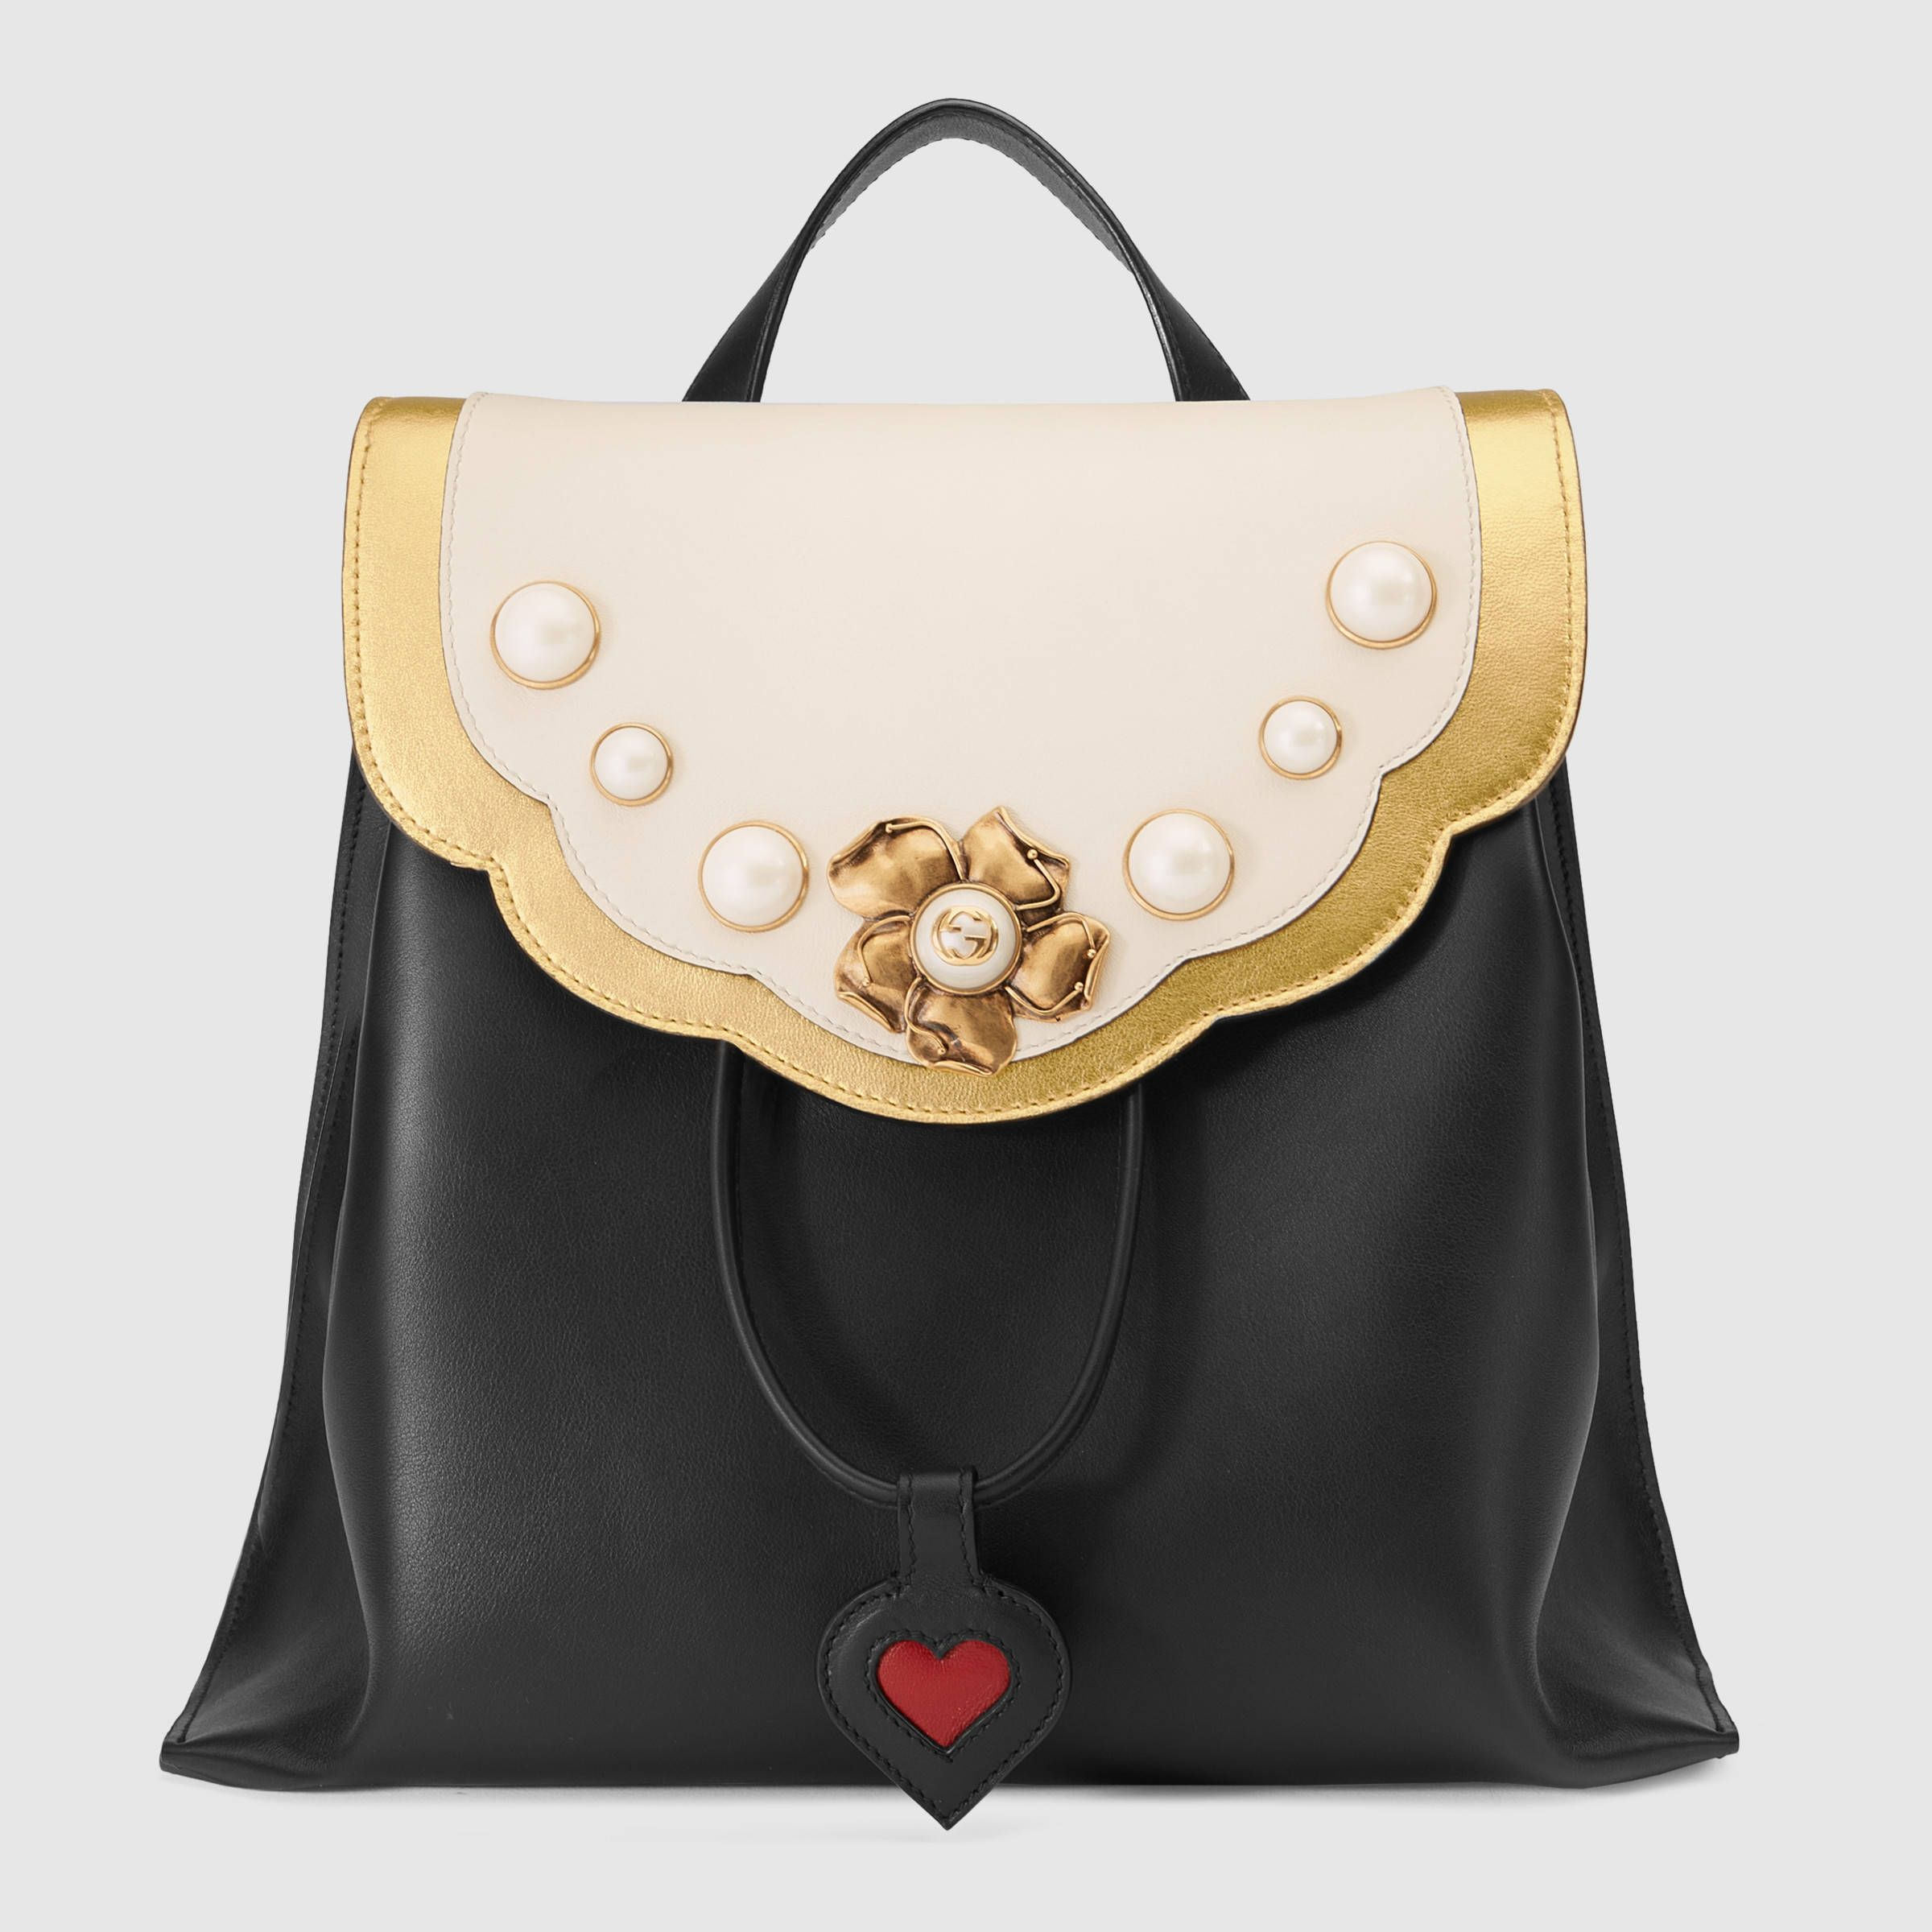 gucci bags backpack. shop the leather studded backpack by gucci. a new shape for fall winter glass pearl gets an update as center of gold-toned peony flower. gucci bags